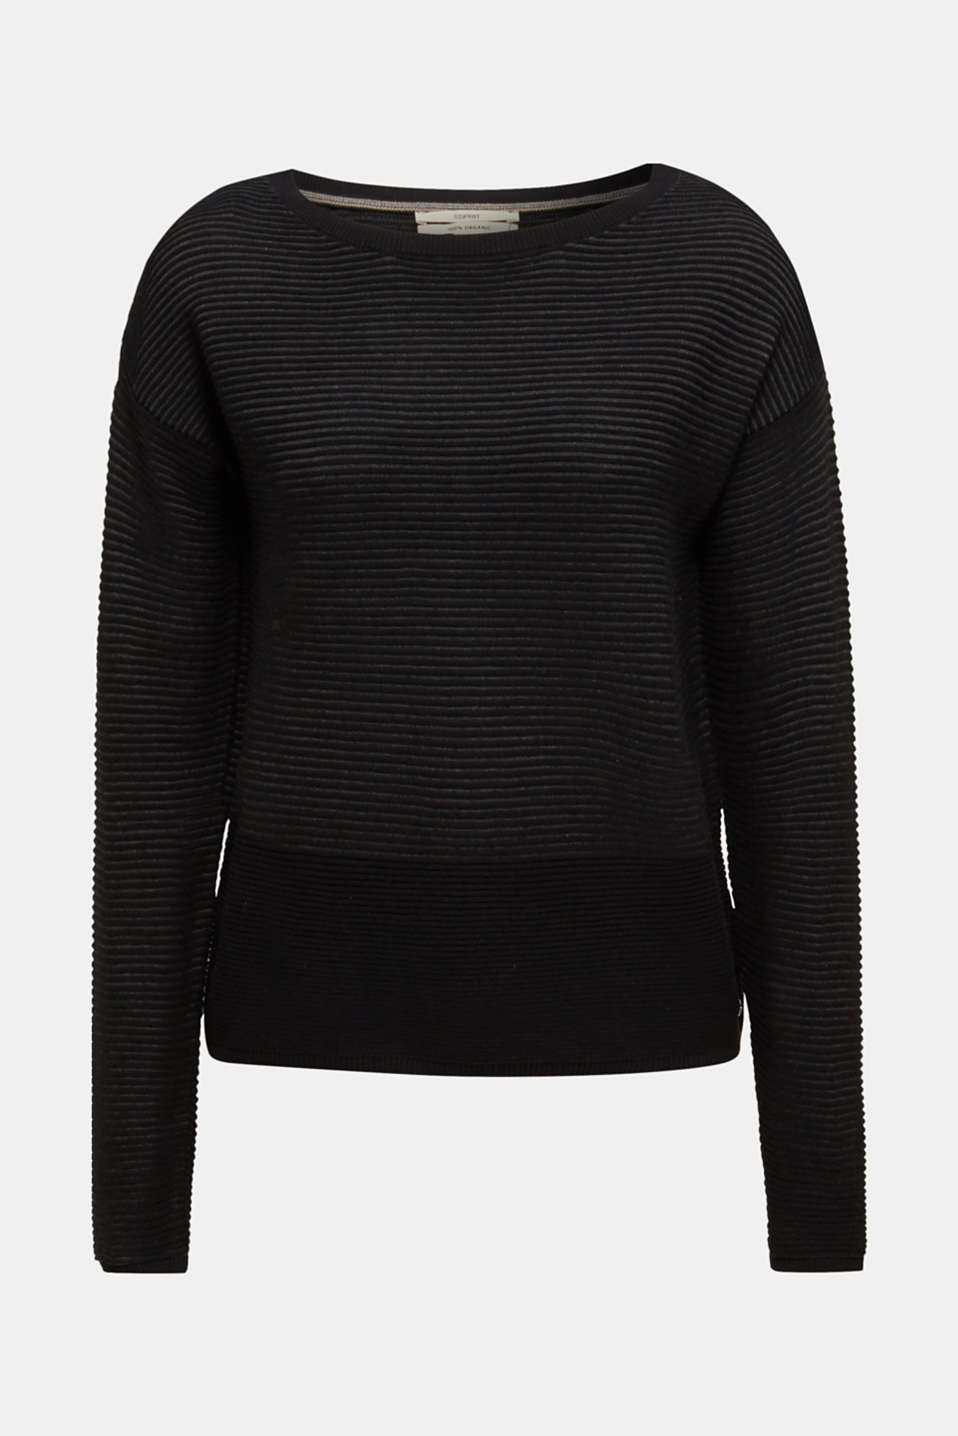 Ribbed-Jumper made of 100% cotton, BLACK 2, detail image number 6